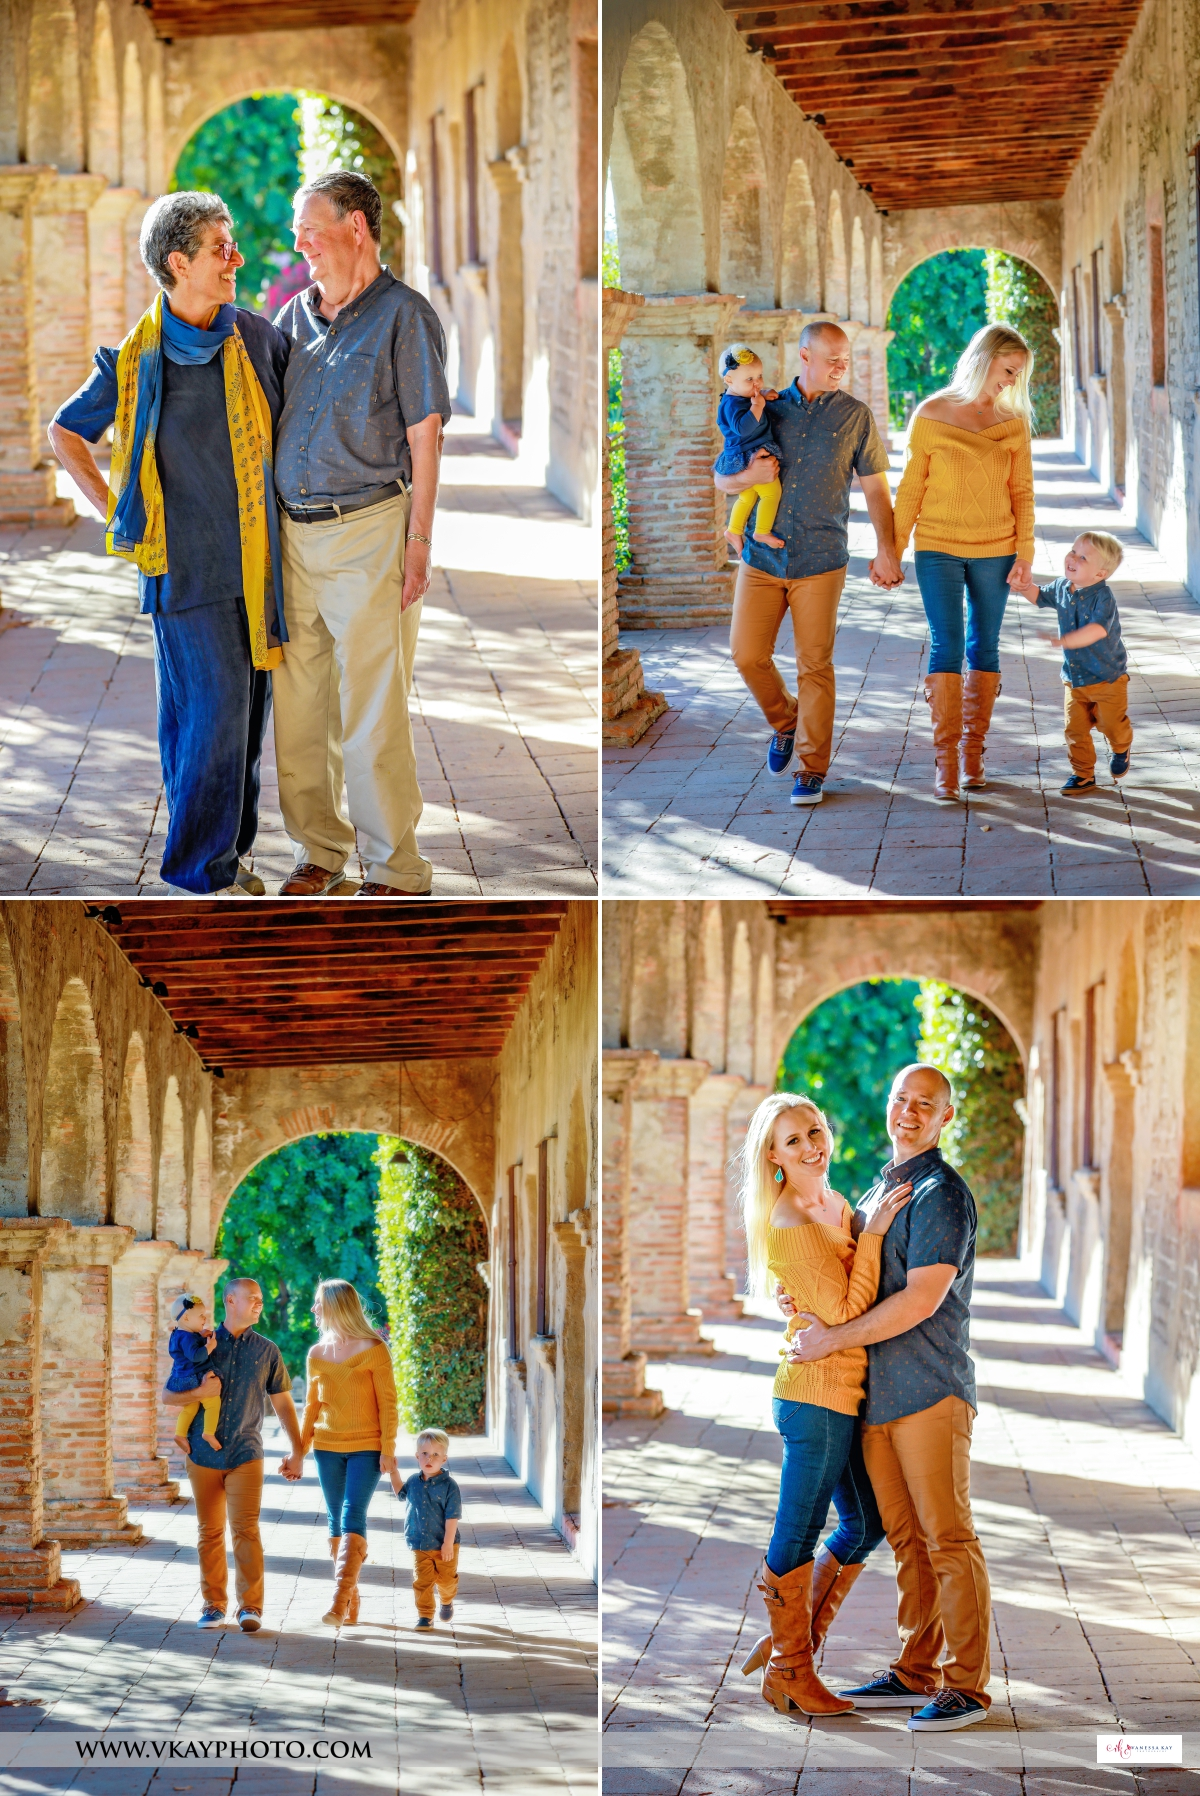 couples and families walking and posing at san juan capistrano